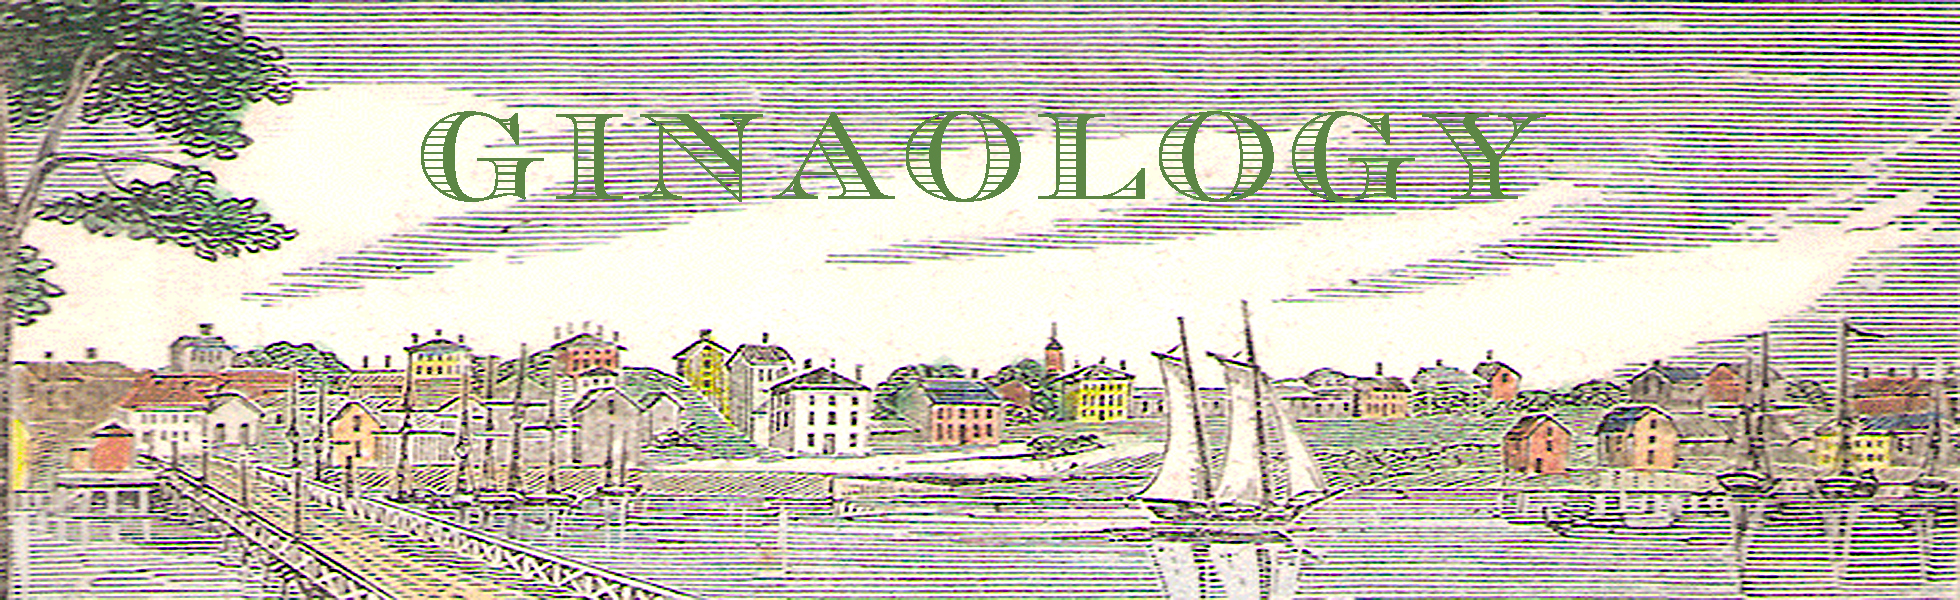 Beverly MA print with green Ginaology